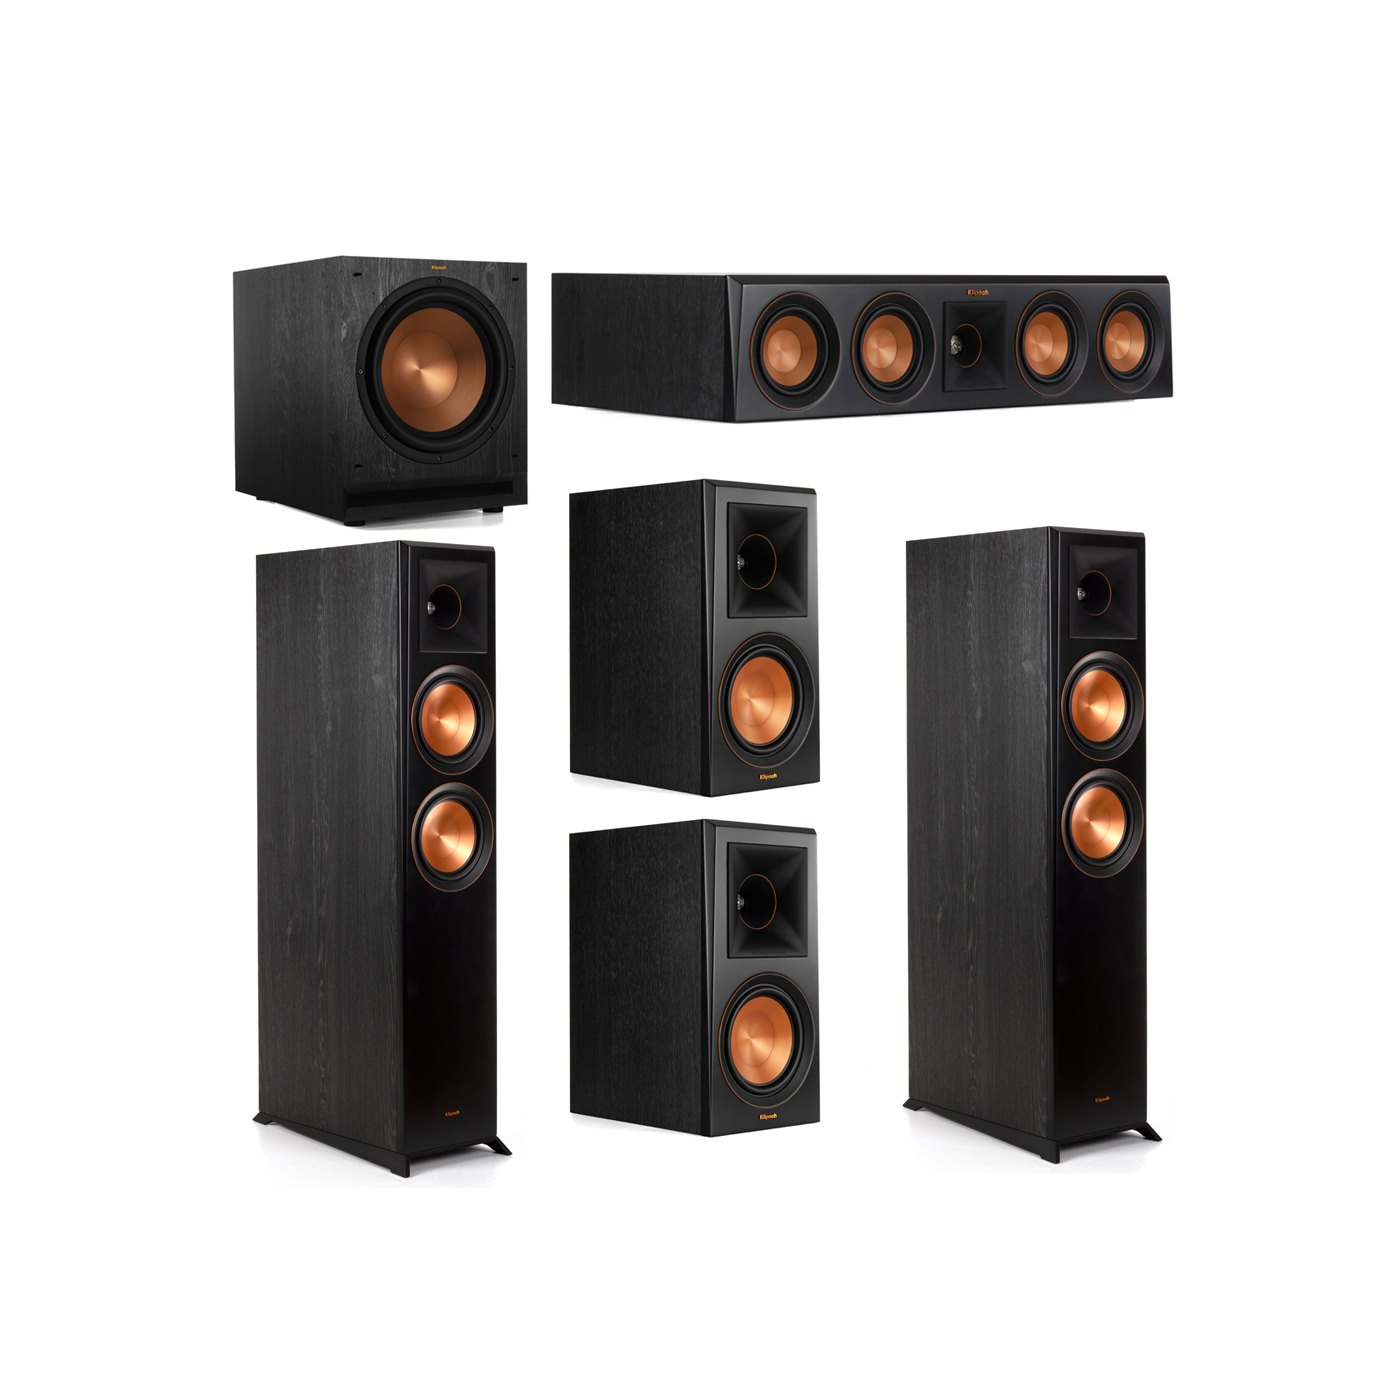 Klipsch 5.1 System with 2 RP-6000F Floorstanding Speakers, 1 Klipsch RP-404C Center Speaker, 2 Klipsch RP-600M Surround Speakers, 1 Klipsch SPL-120 Subwoofer